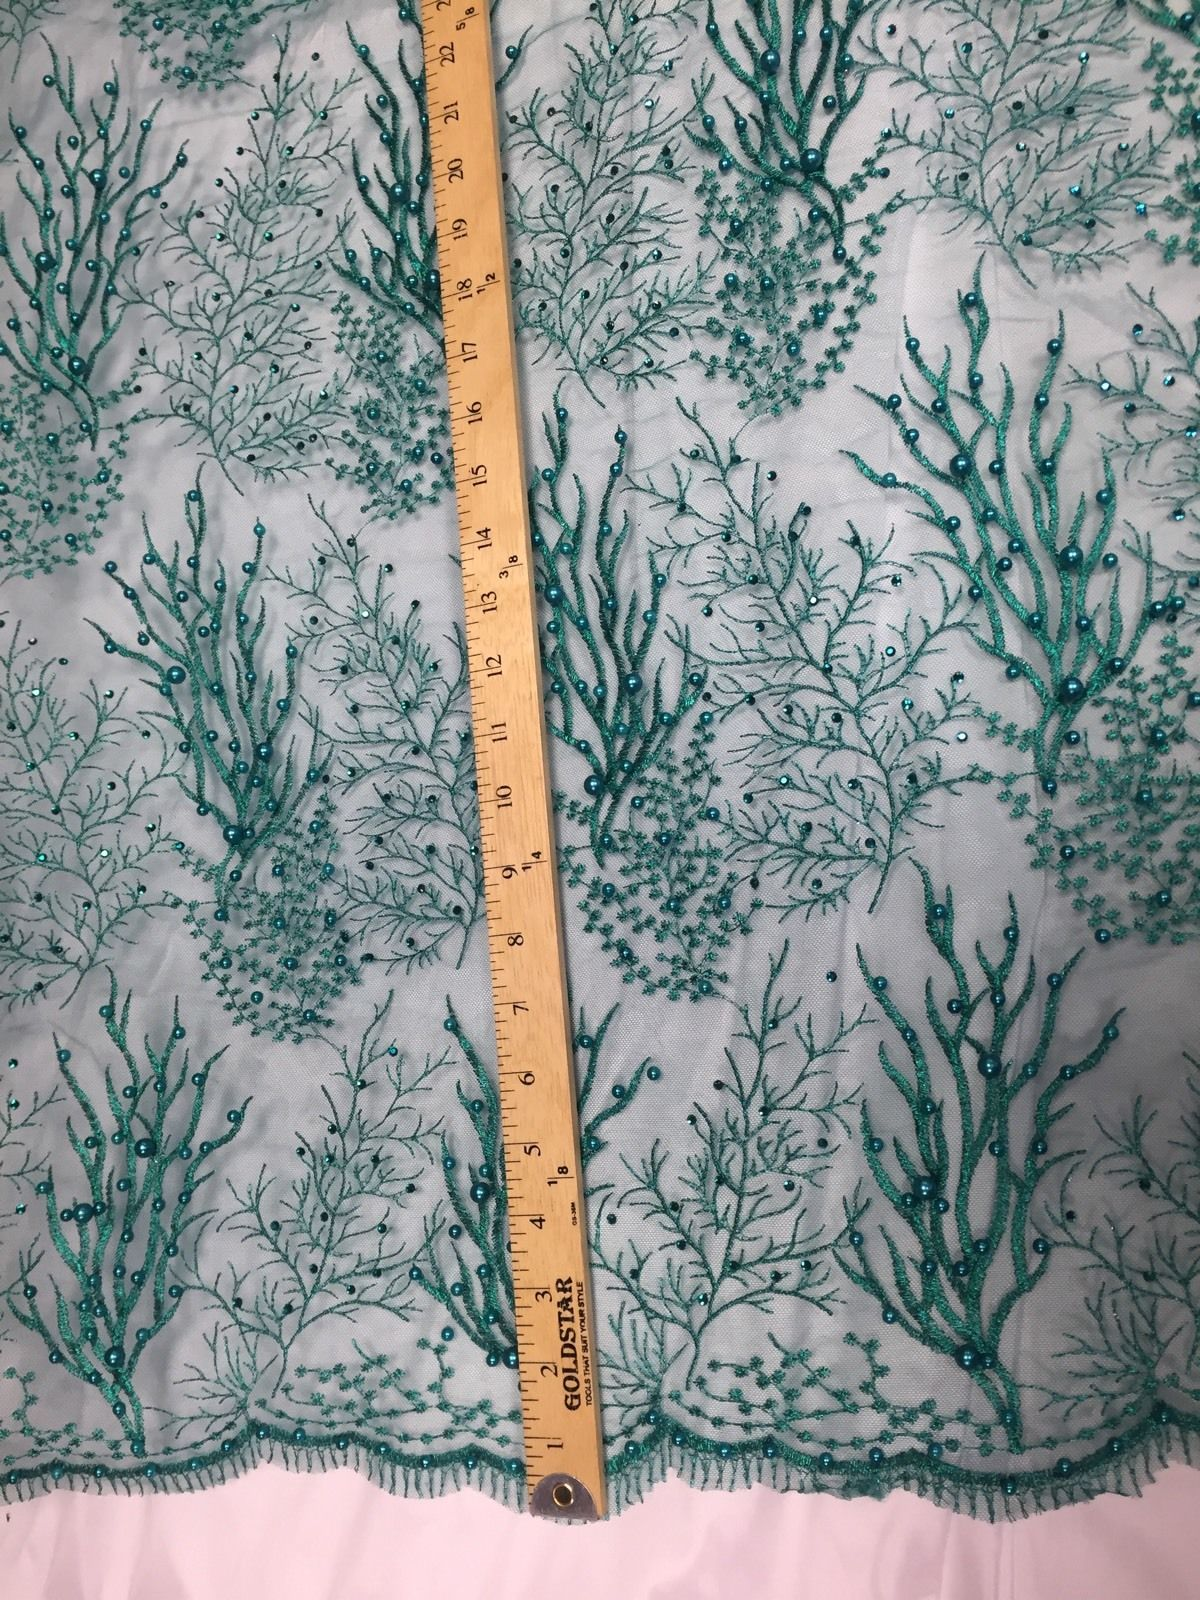 Royalty Pearls Branch Design Mesh Lace Fabric Teal. Sold By The Yard - KINGDOM OF FABRICS